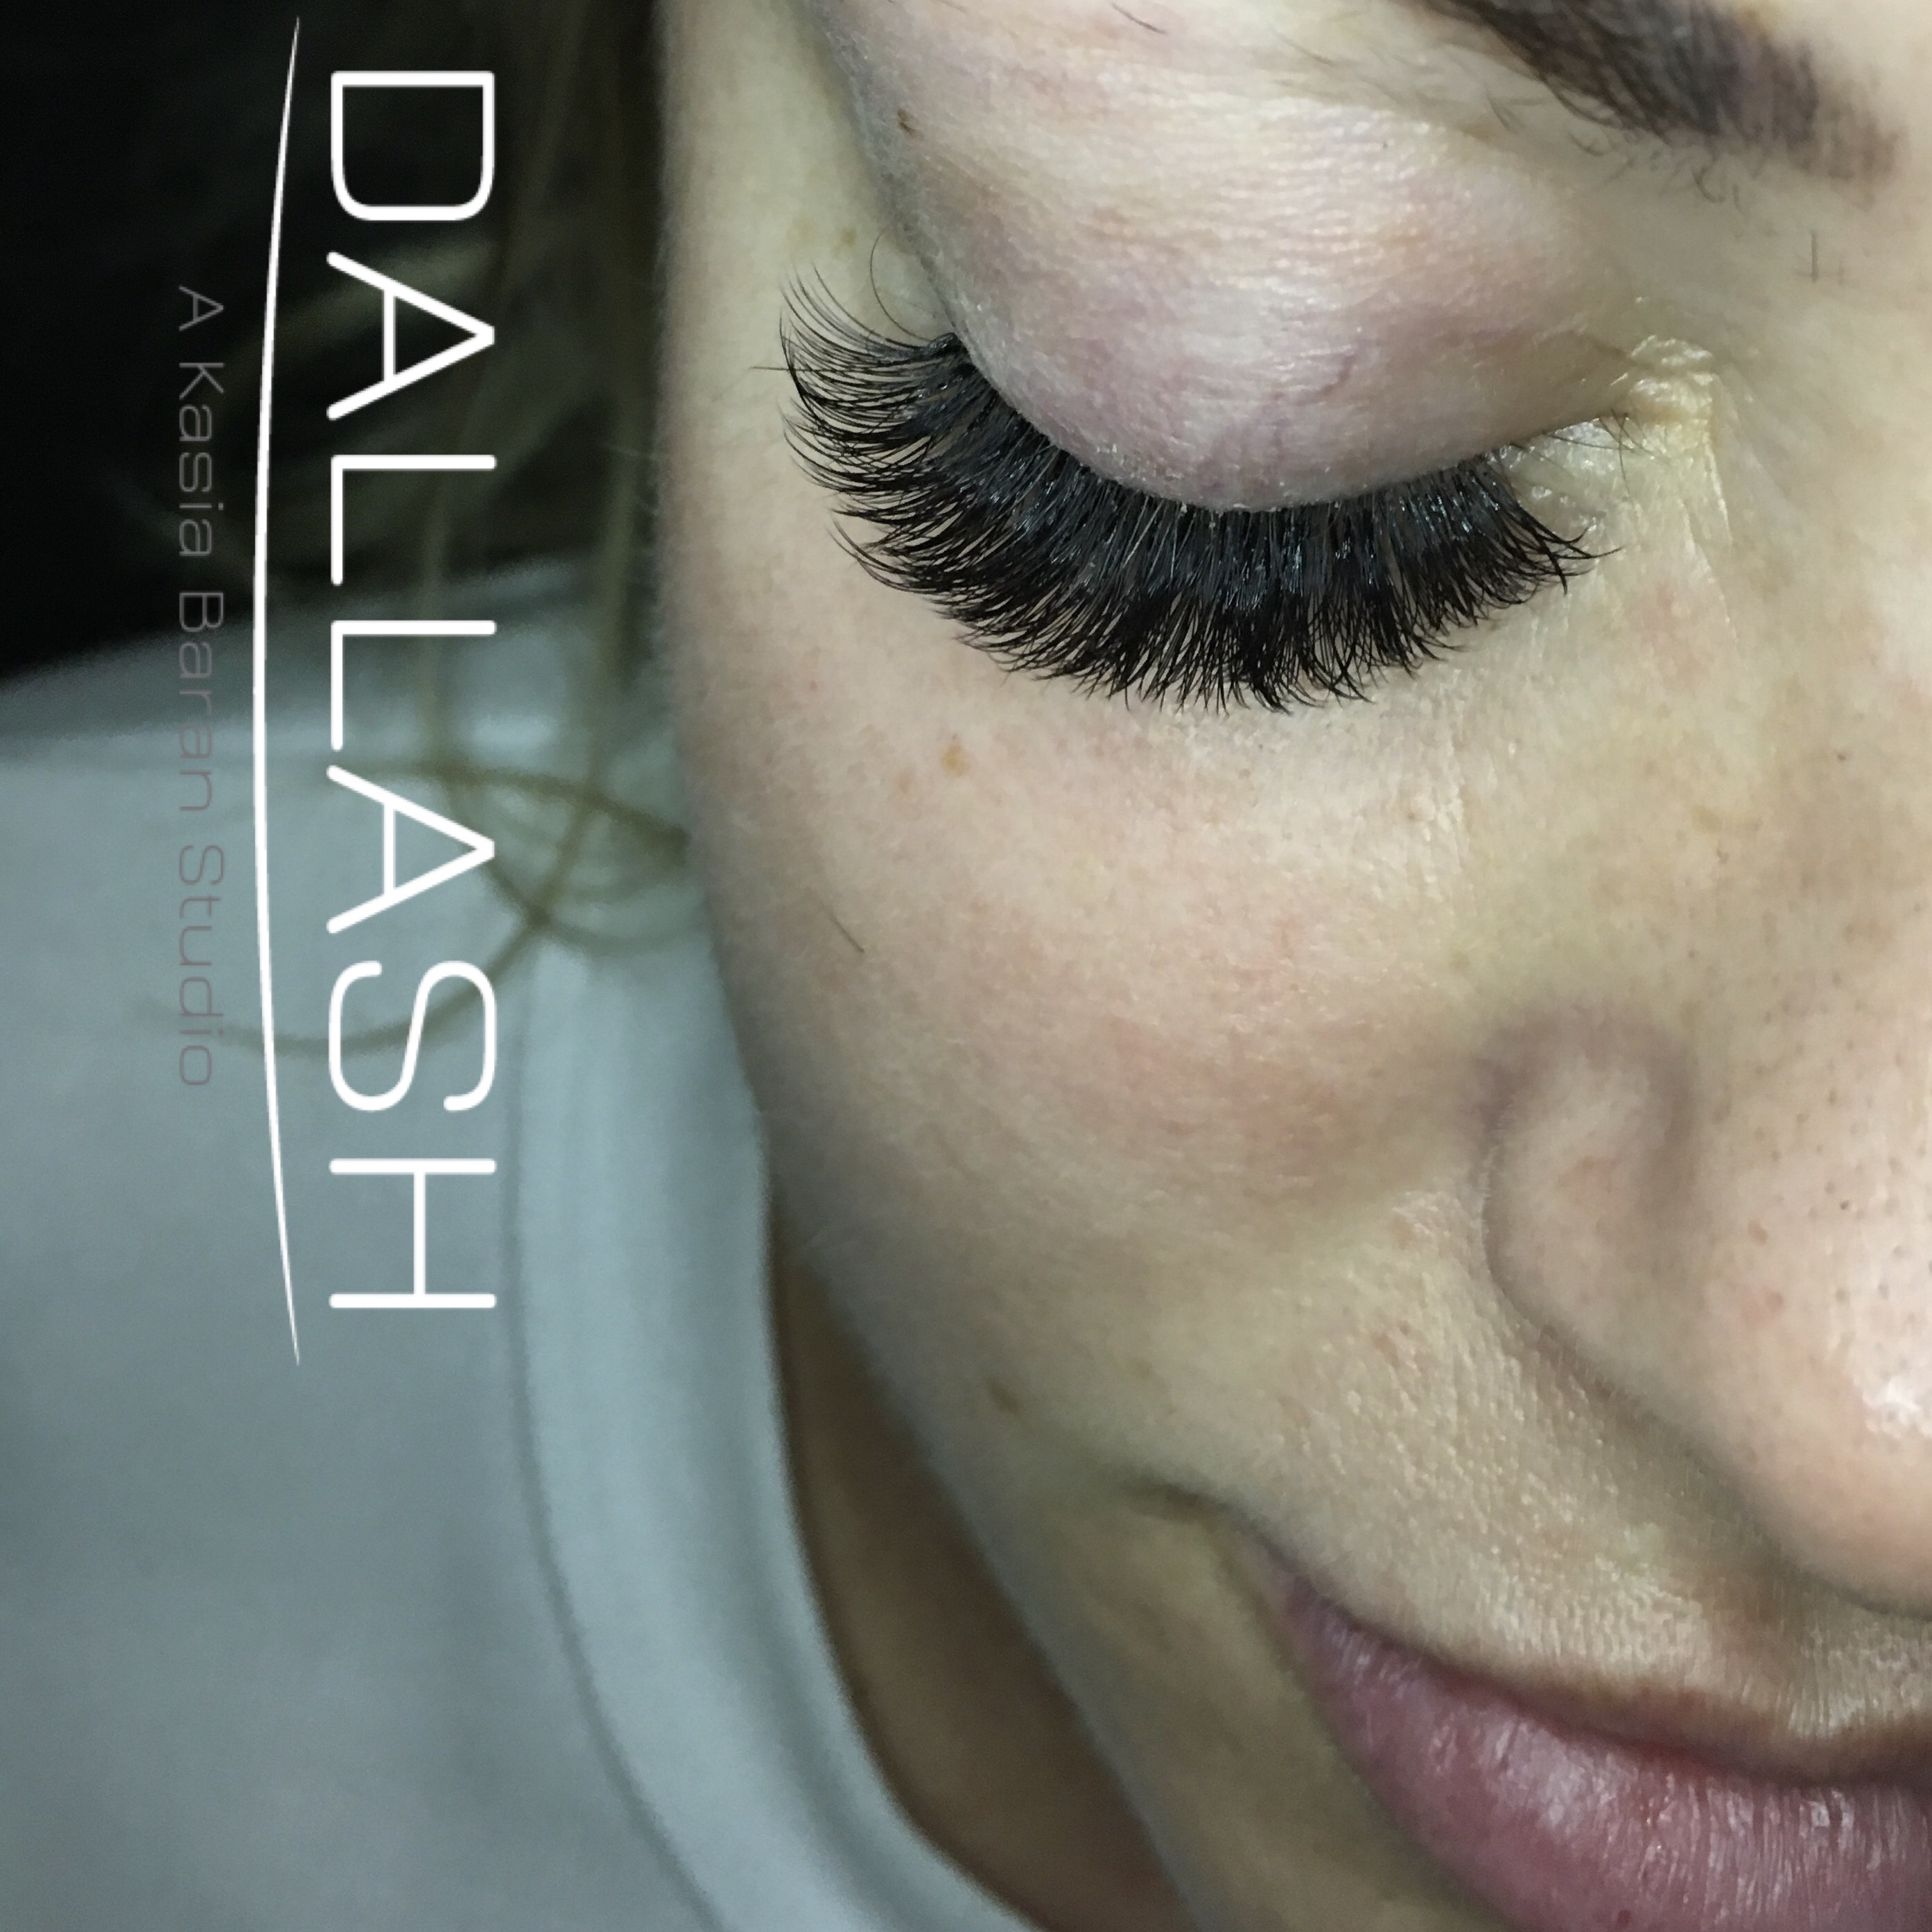 MEGA VOLUME- Volume lashes-lashes-mega volume-russina volume-dallas lashes- dallash-eyelash extensio